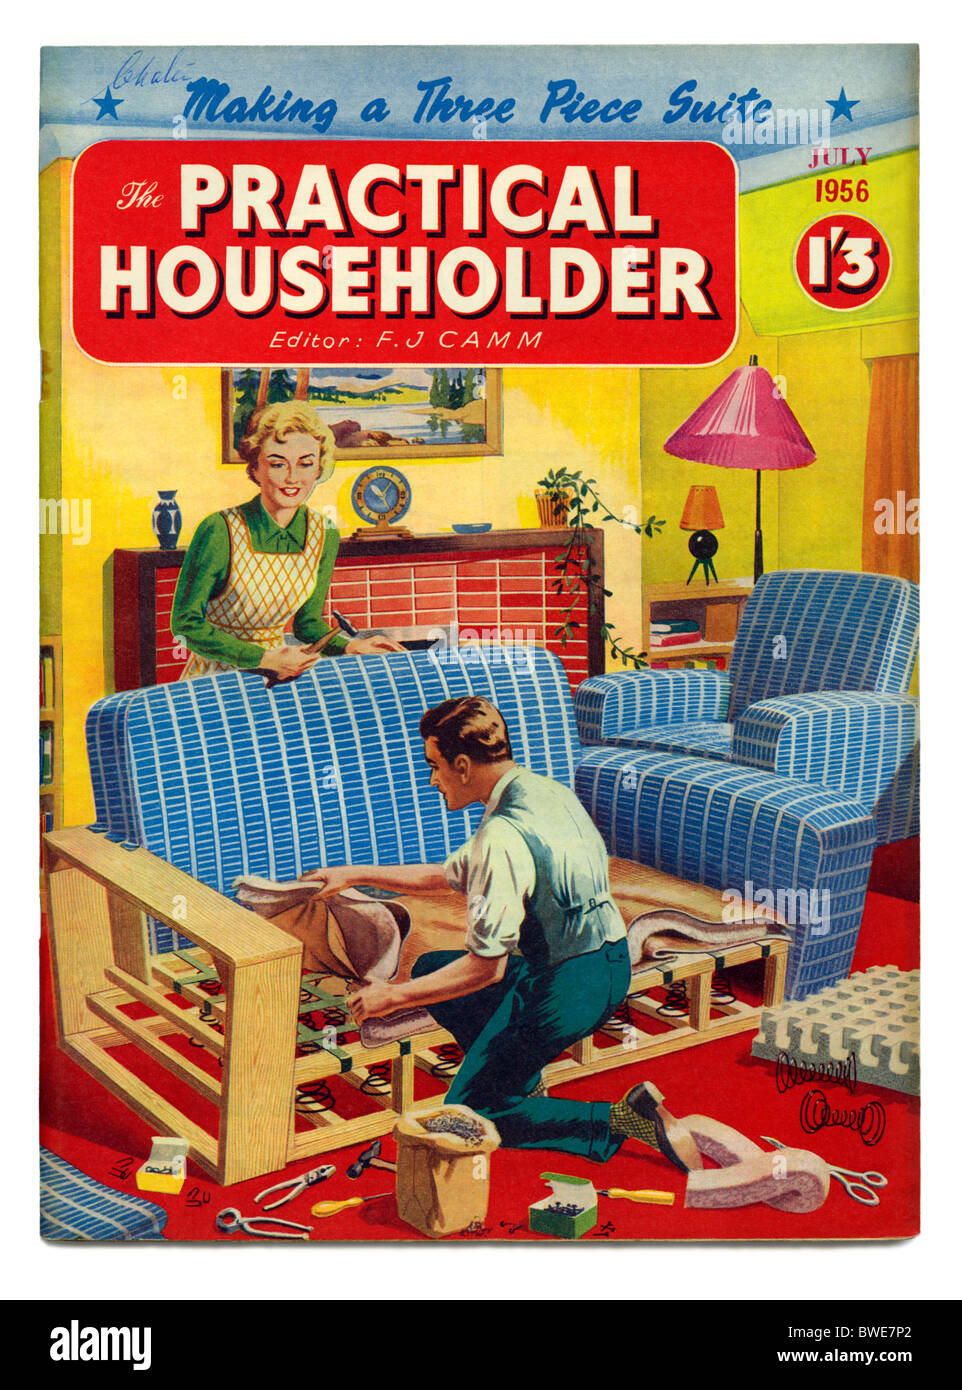 Cover of Practical Householder magazine, July 1956, featuring upholstering a three piece suit - Stock Image